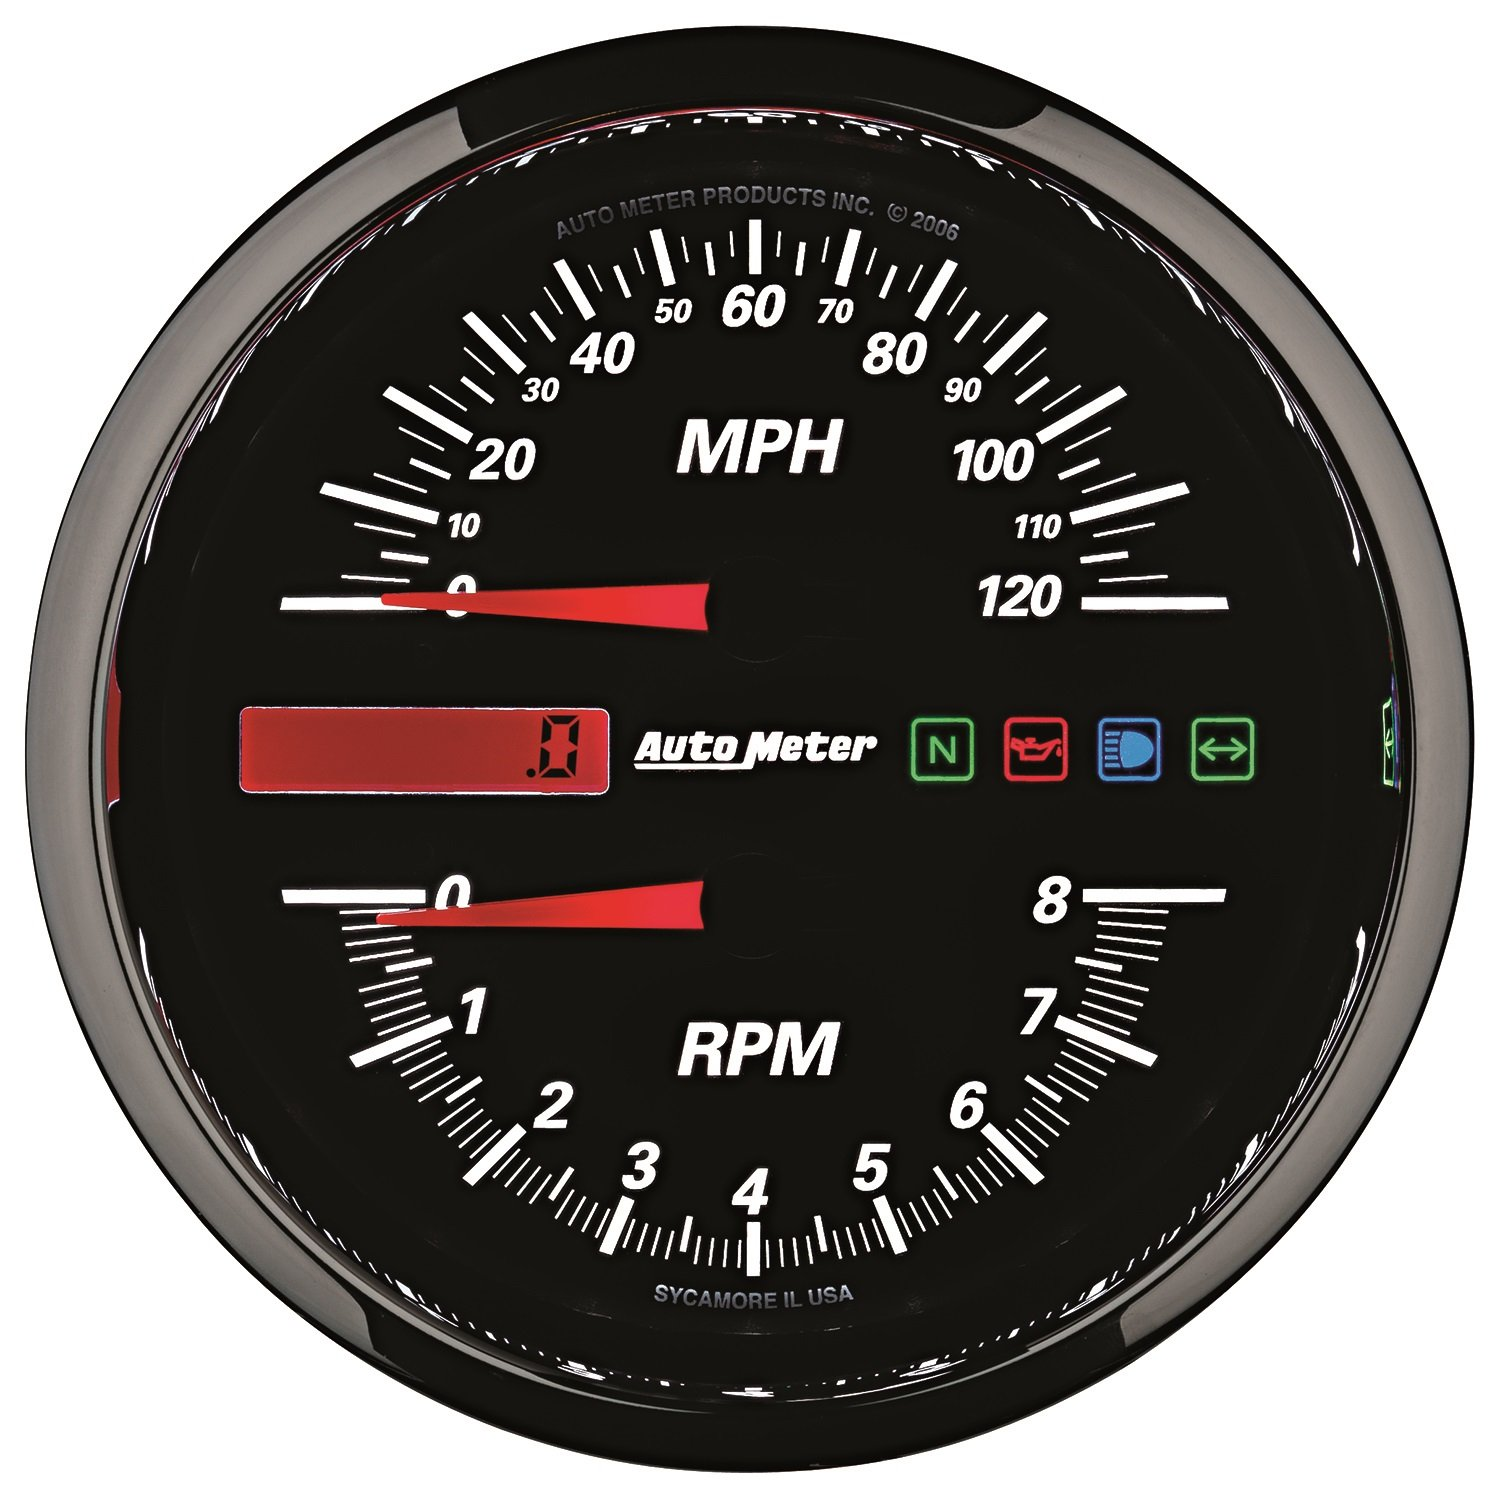 Amazon.com: AutoMeter 19466 Pro-Cycle Tach/Speedo Kit 4-1/2 in. Black Dial  Face Fluorescent Red Pointer White LED Lighting Air Core 8K RPM/120 MPH Pro-Cycle  ...